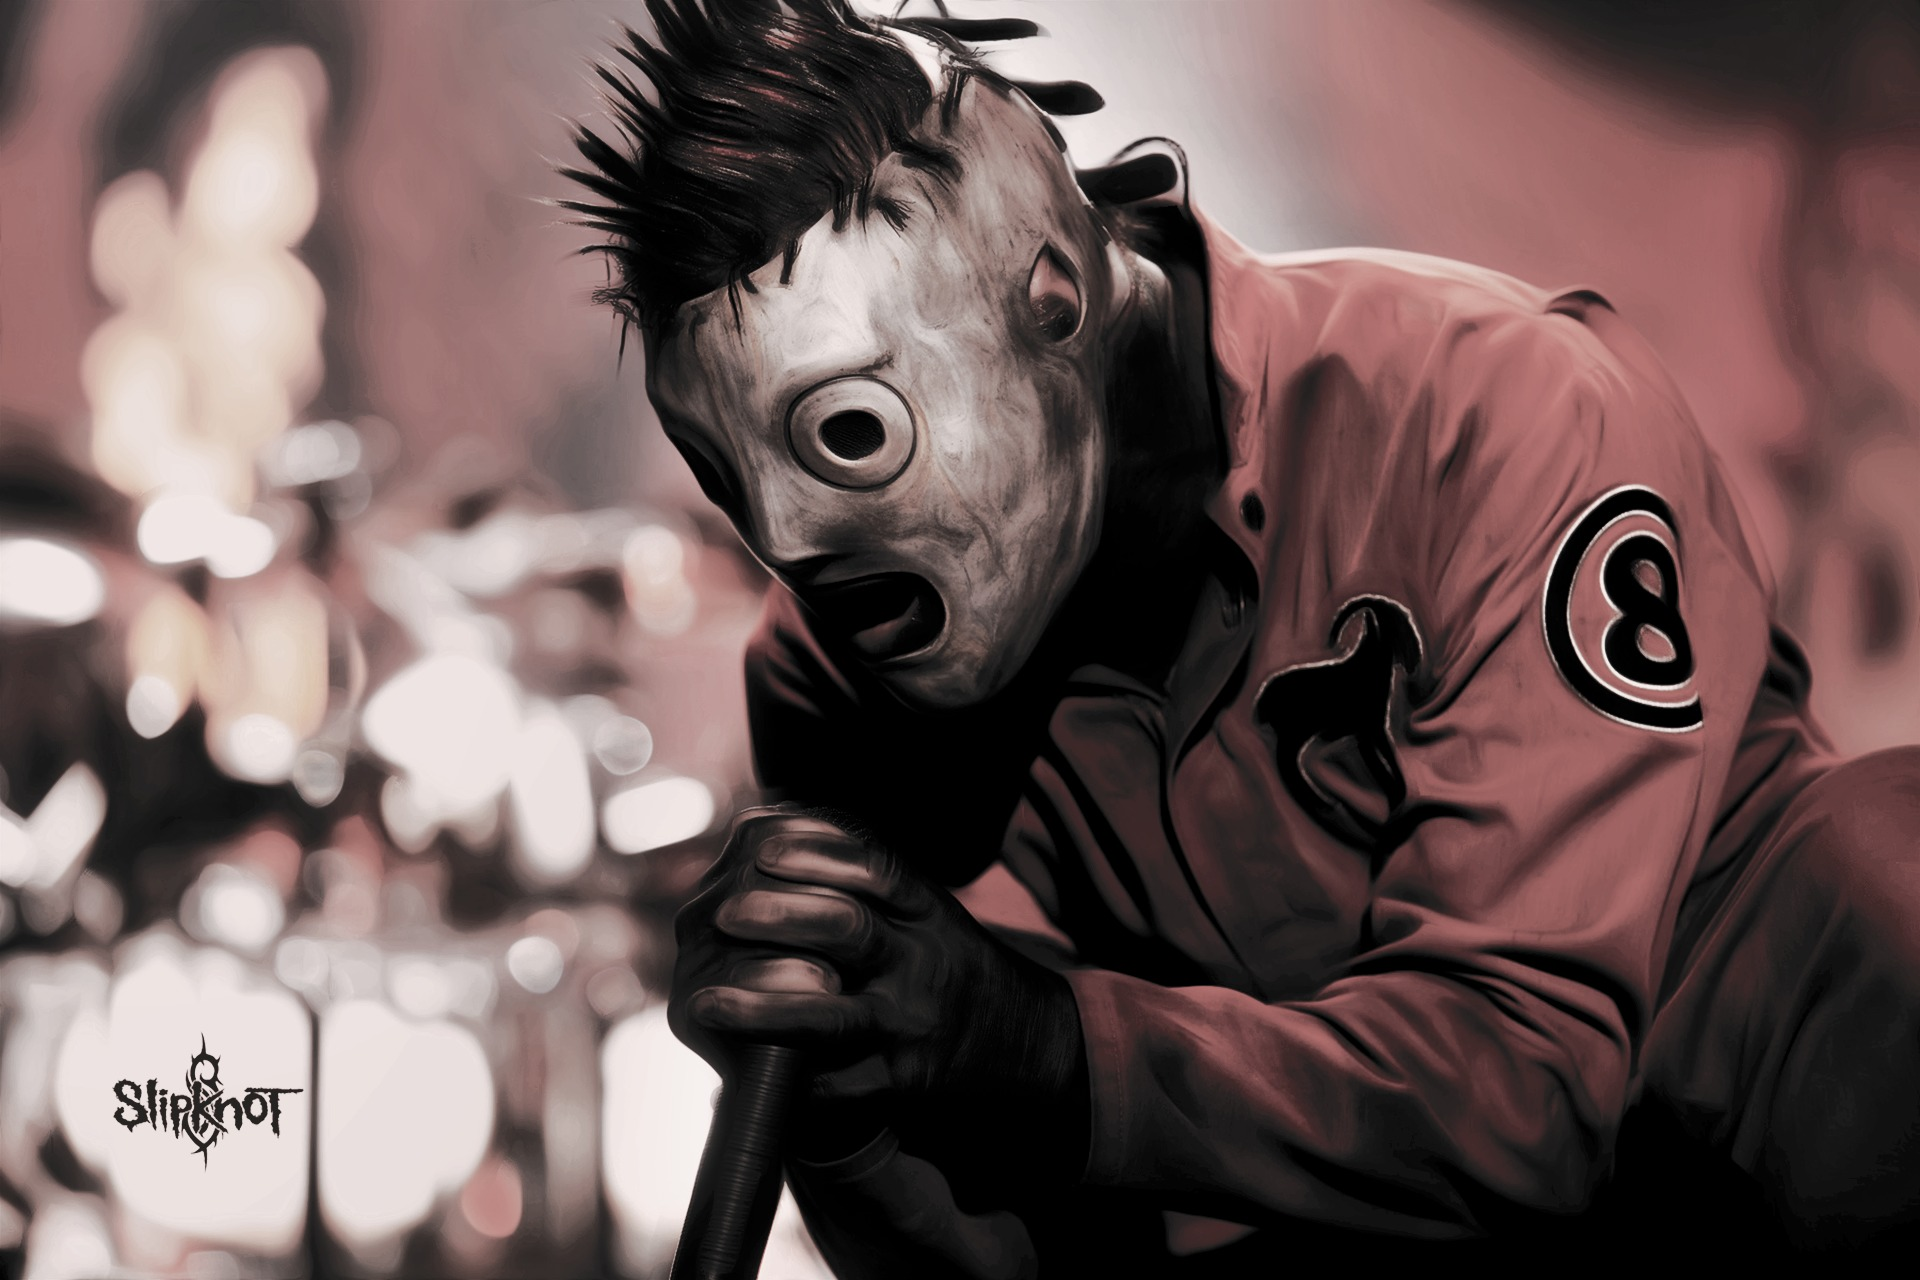 Wallpaper corey taylor slipknot metal rock music mask 1920x1280